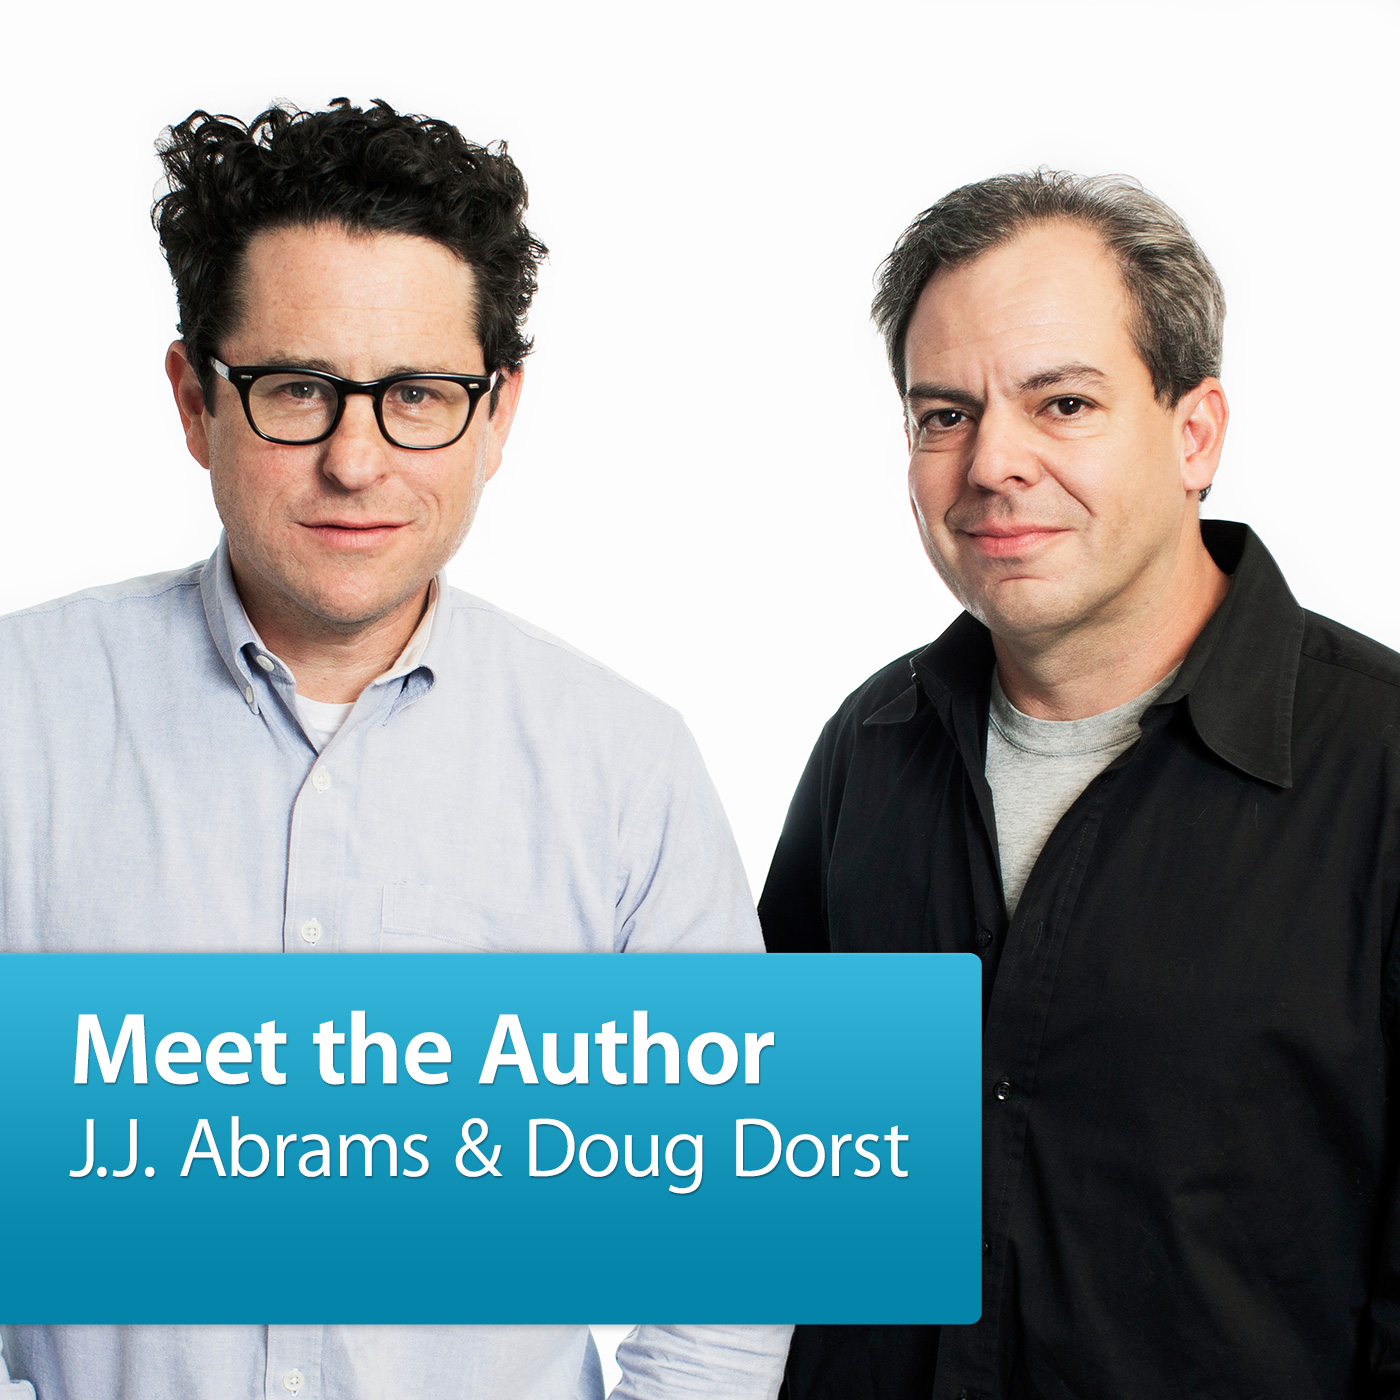 J.J. Abrams and Doug Dorst: Meet the Author